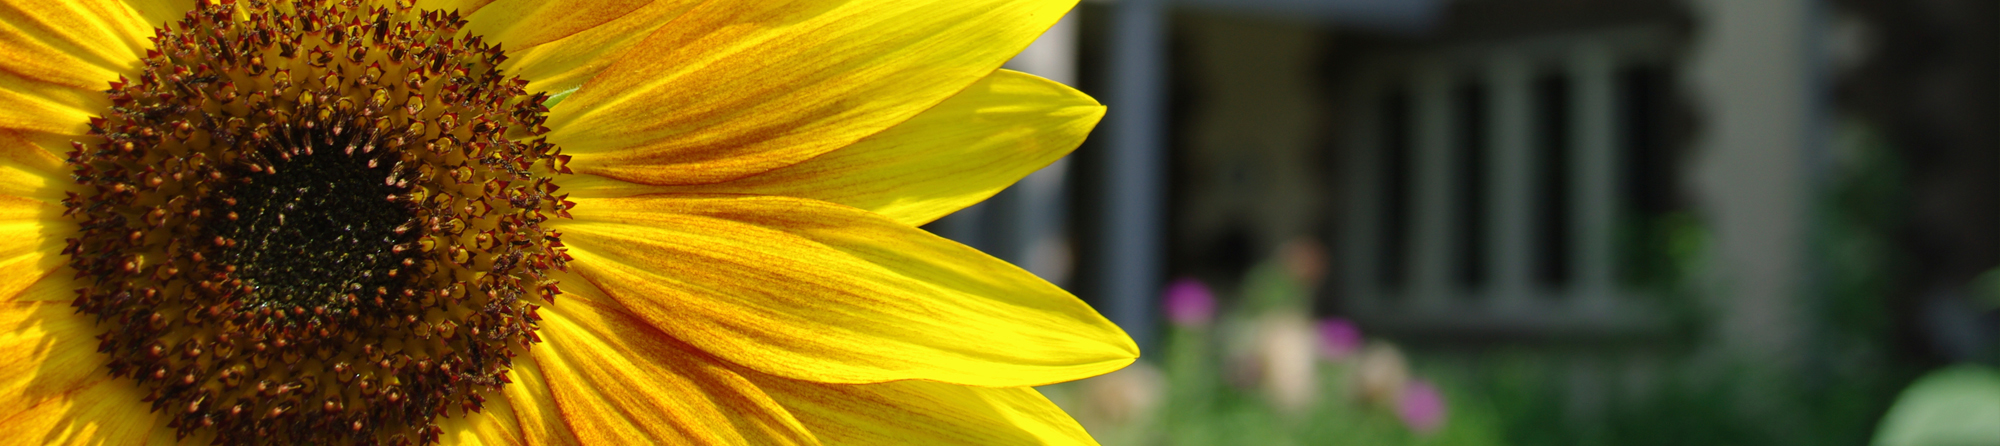 close up of large yellow sunflower